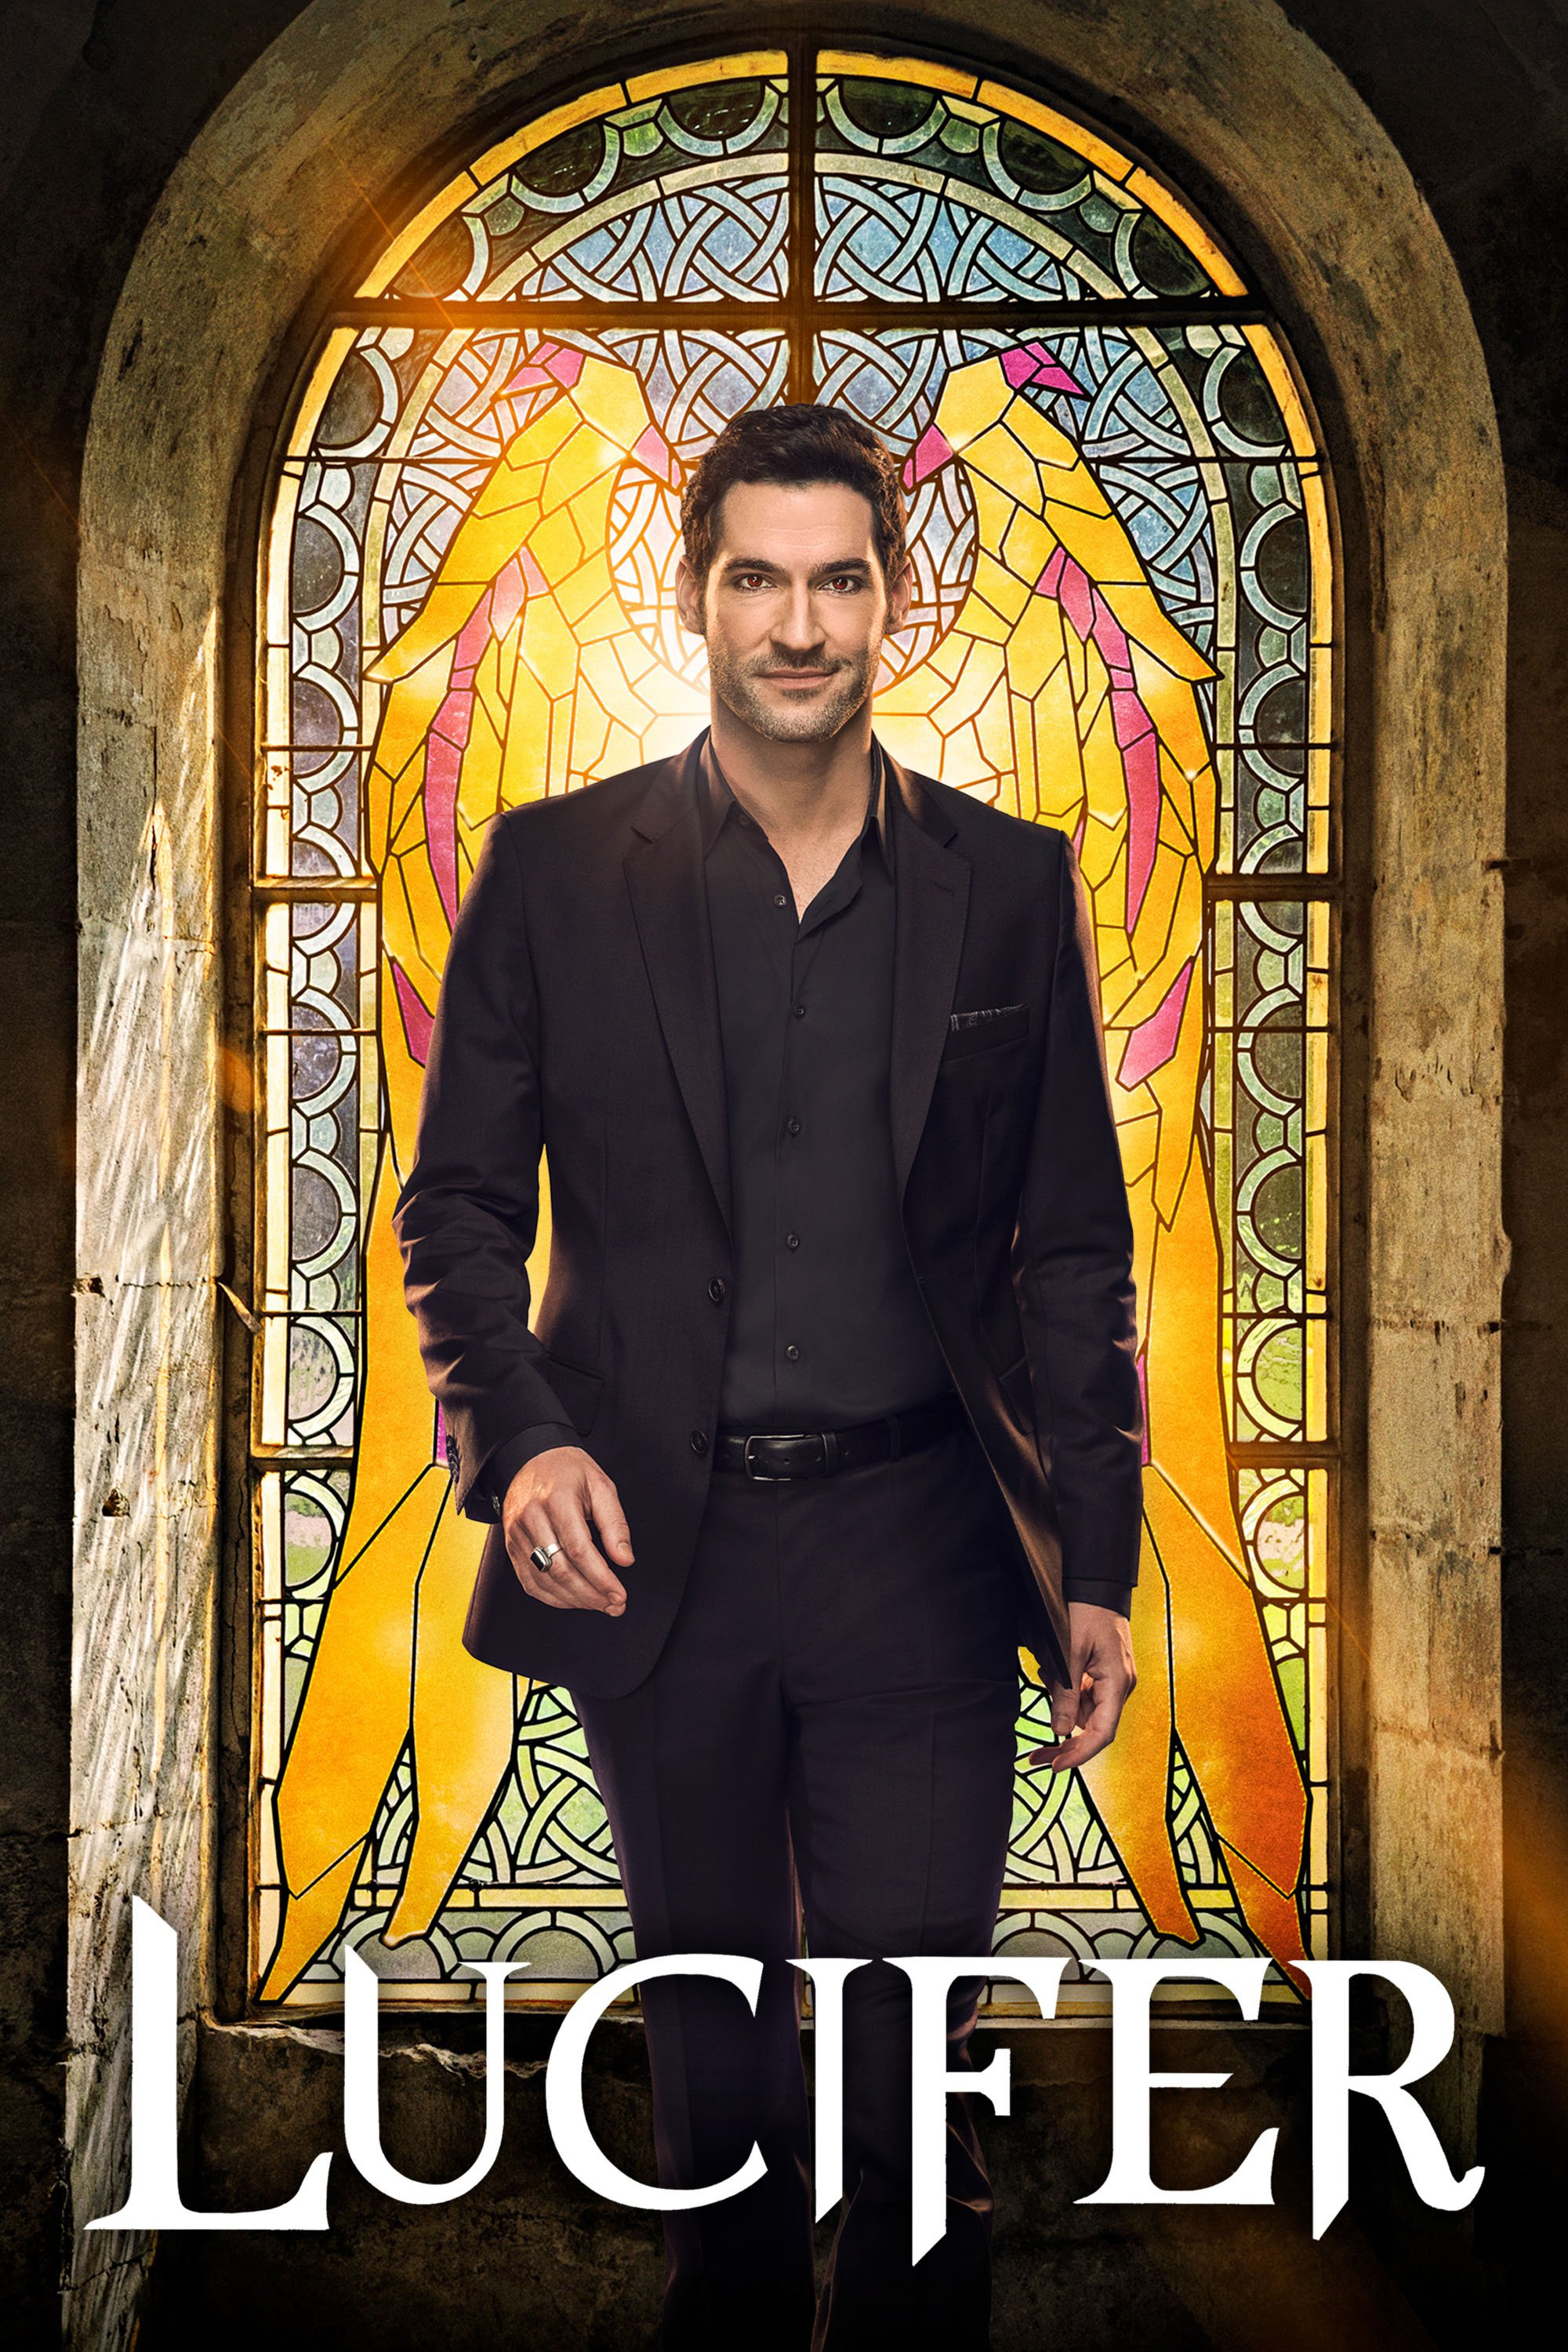 lucifer season 2 episode 14 torrent